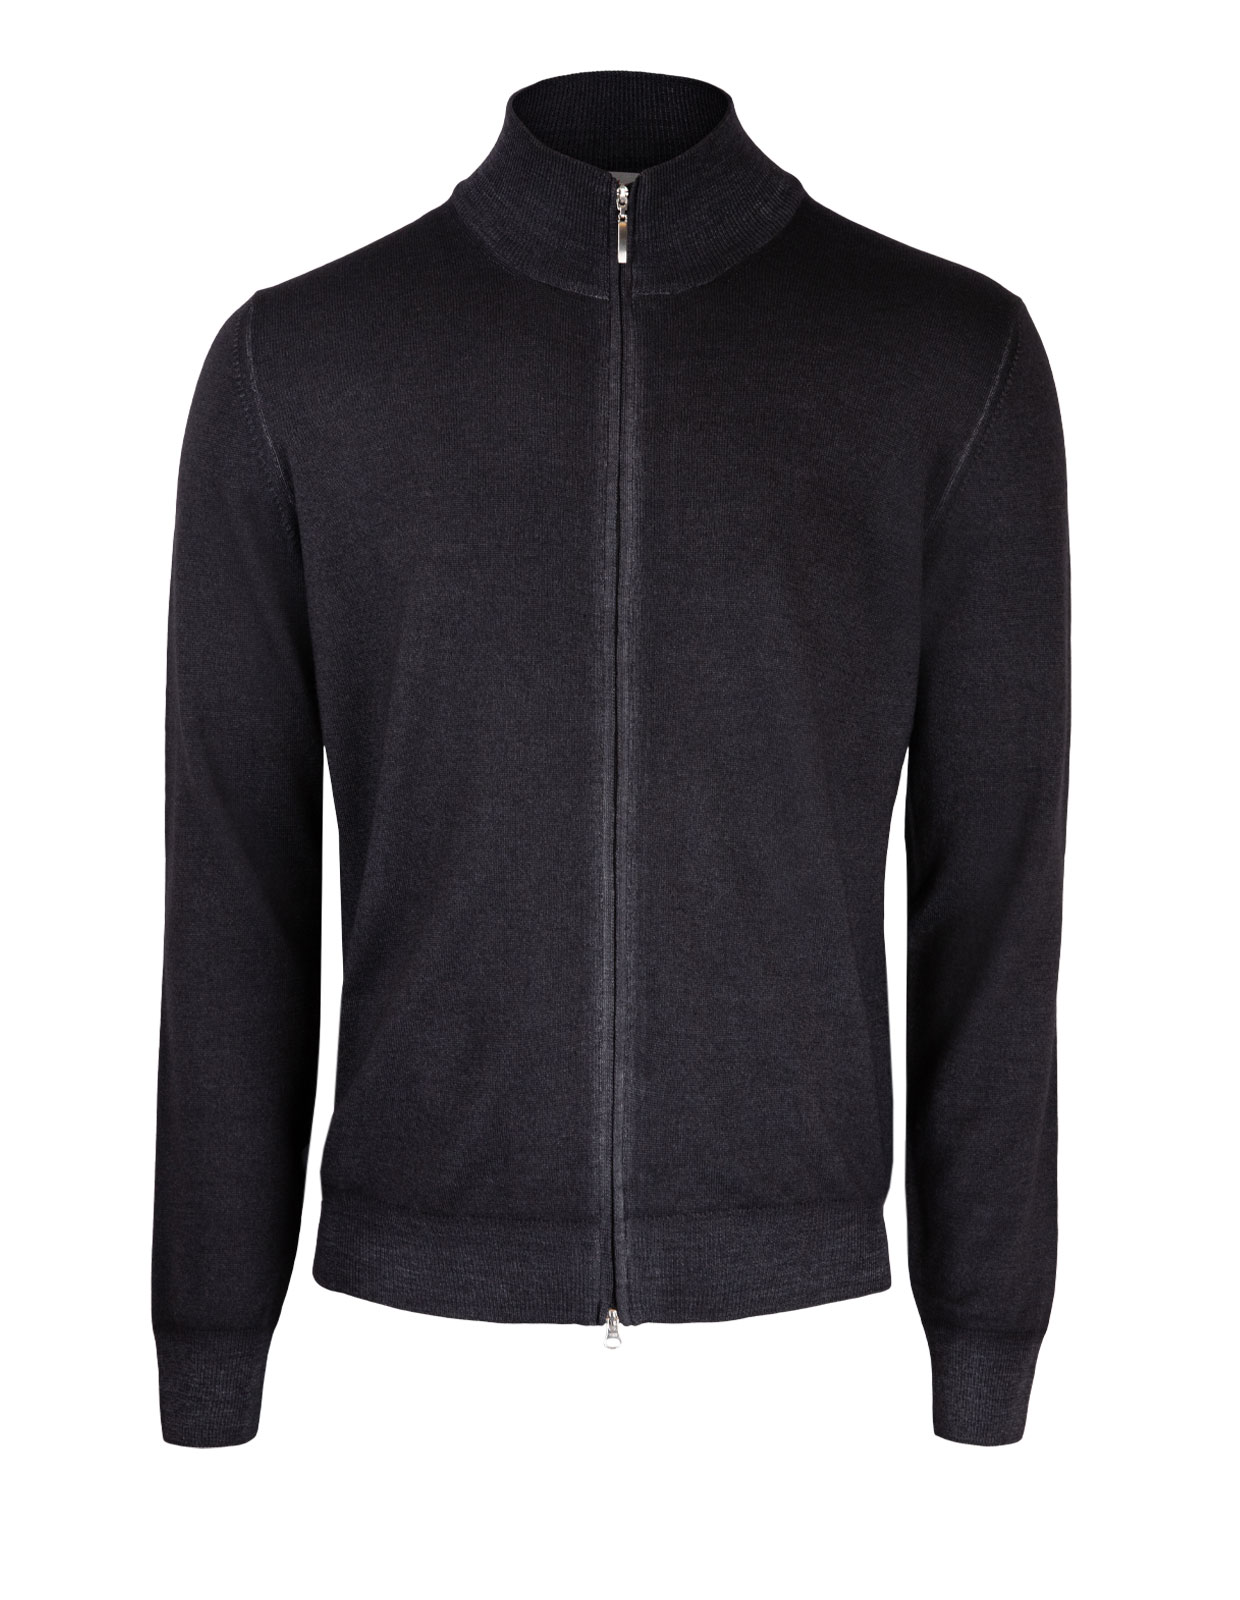 Full Zip Vintage Merino Dark Grey Stl 58